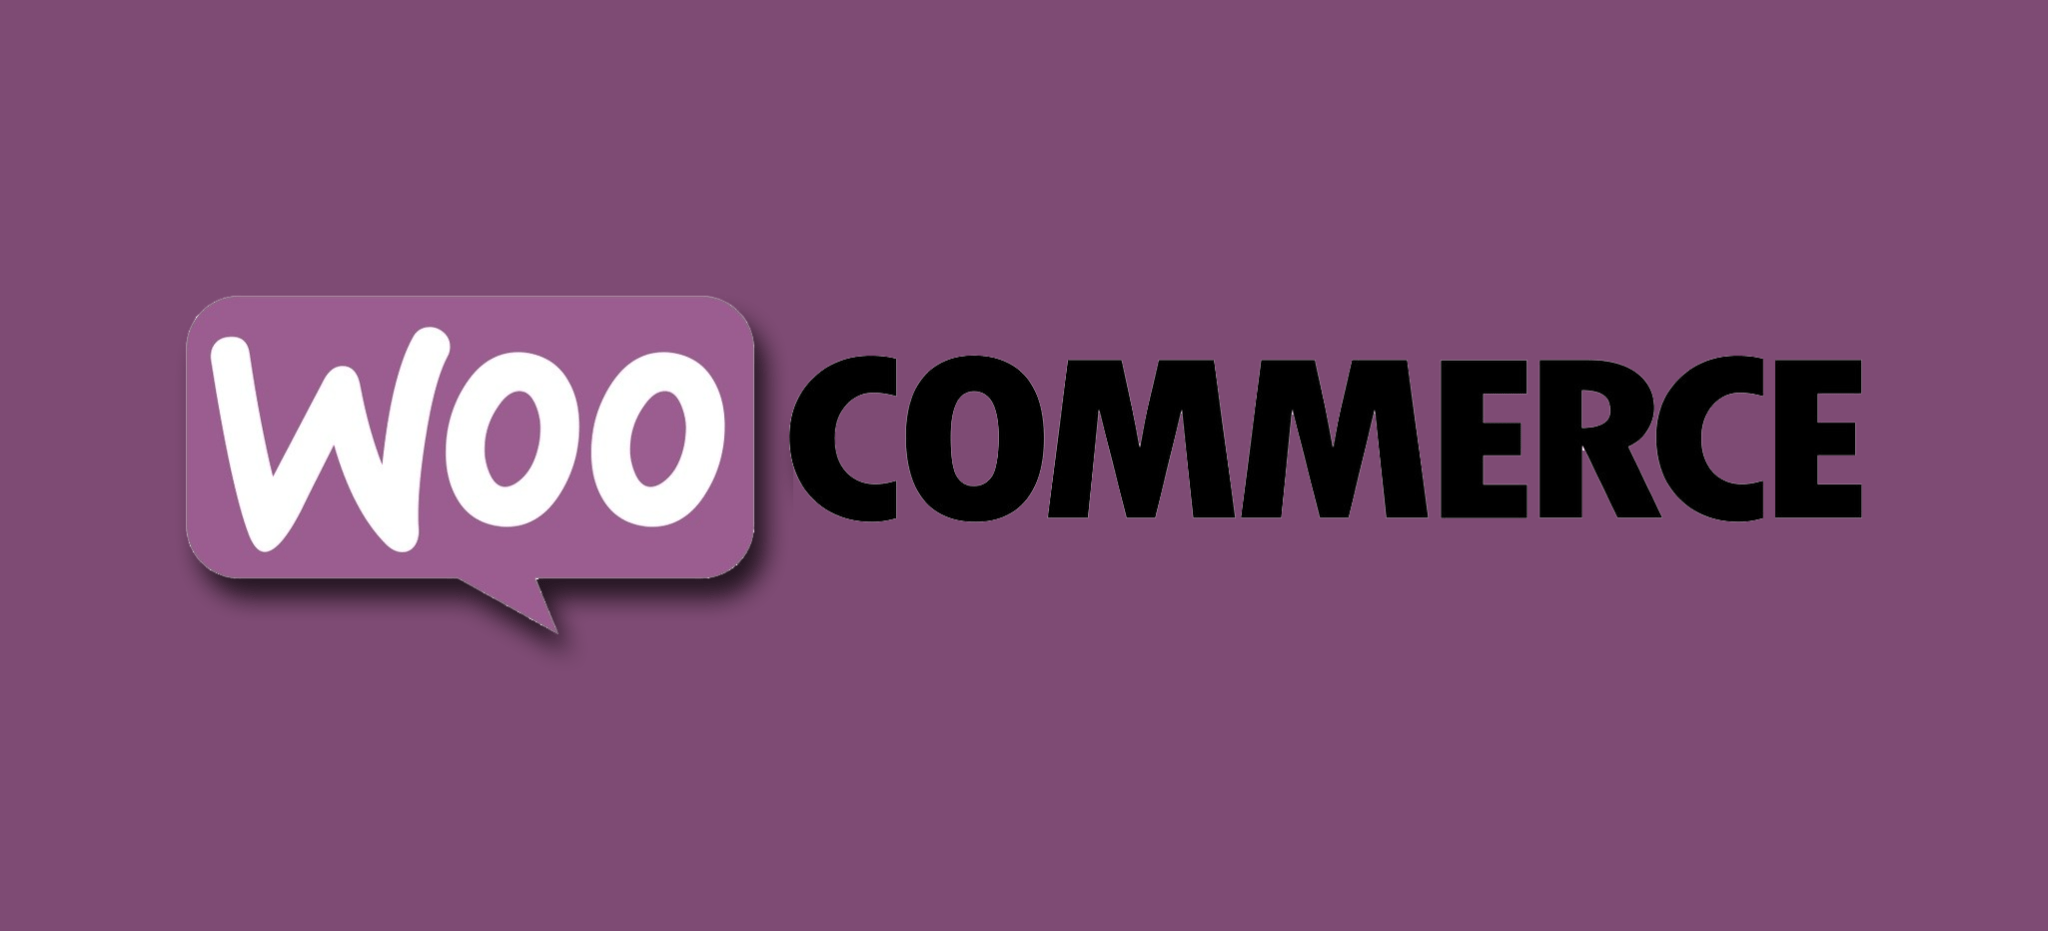 WooCommerce vs Shopify - What is WooCommerce? and Why you should use it?